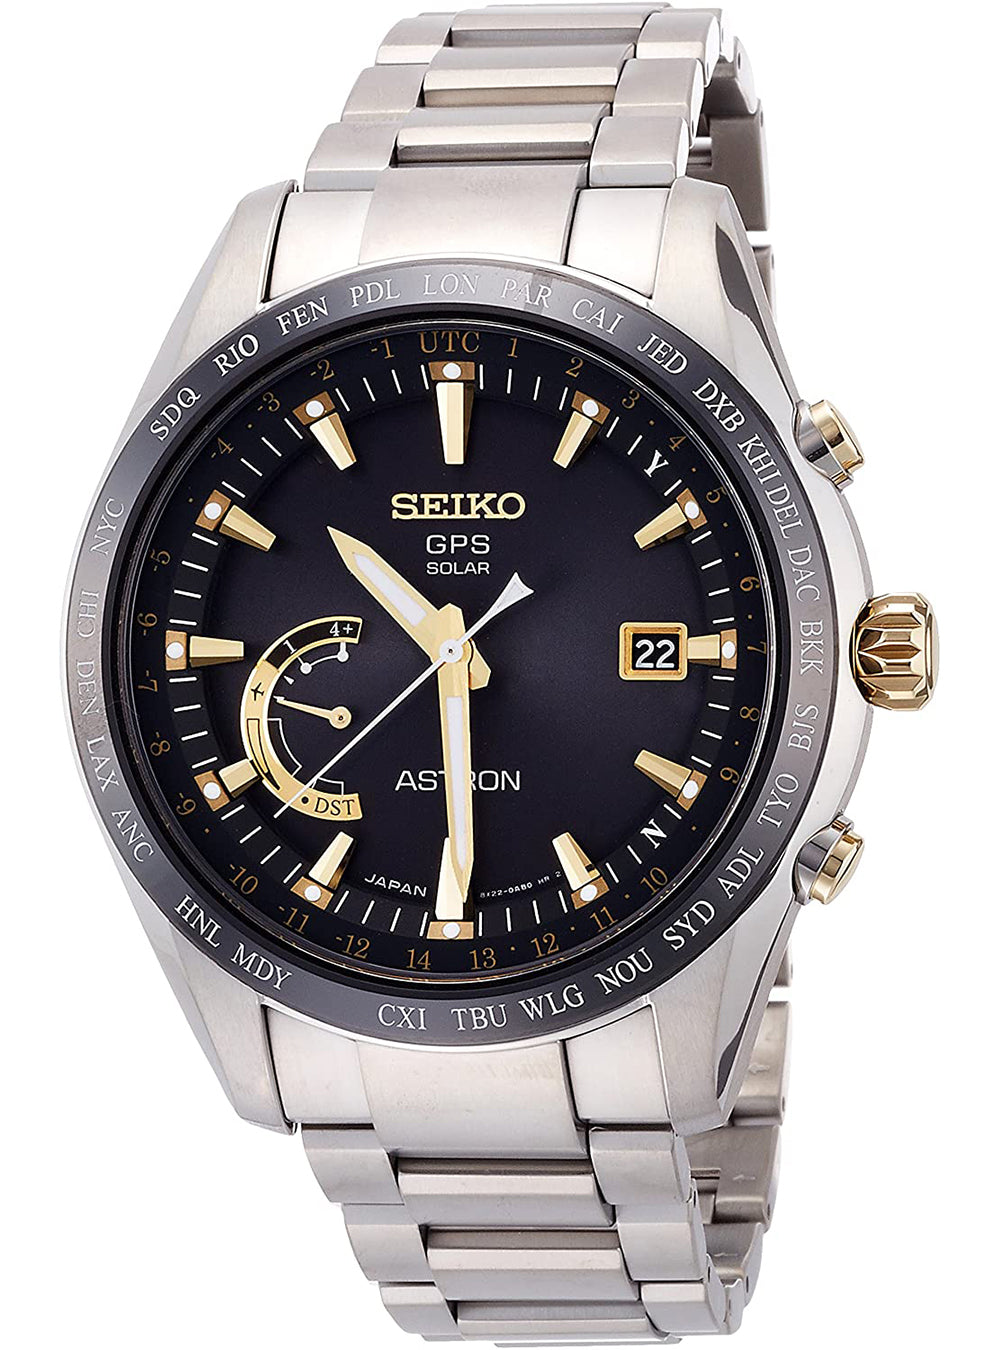 SEIKO ASTRON SBXB087 MADE IN JAPAN JDM